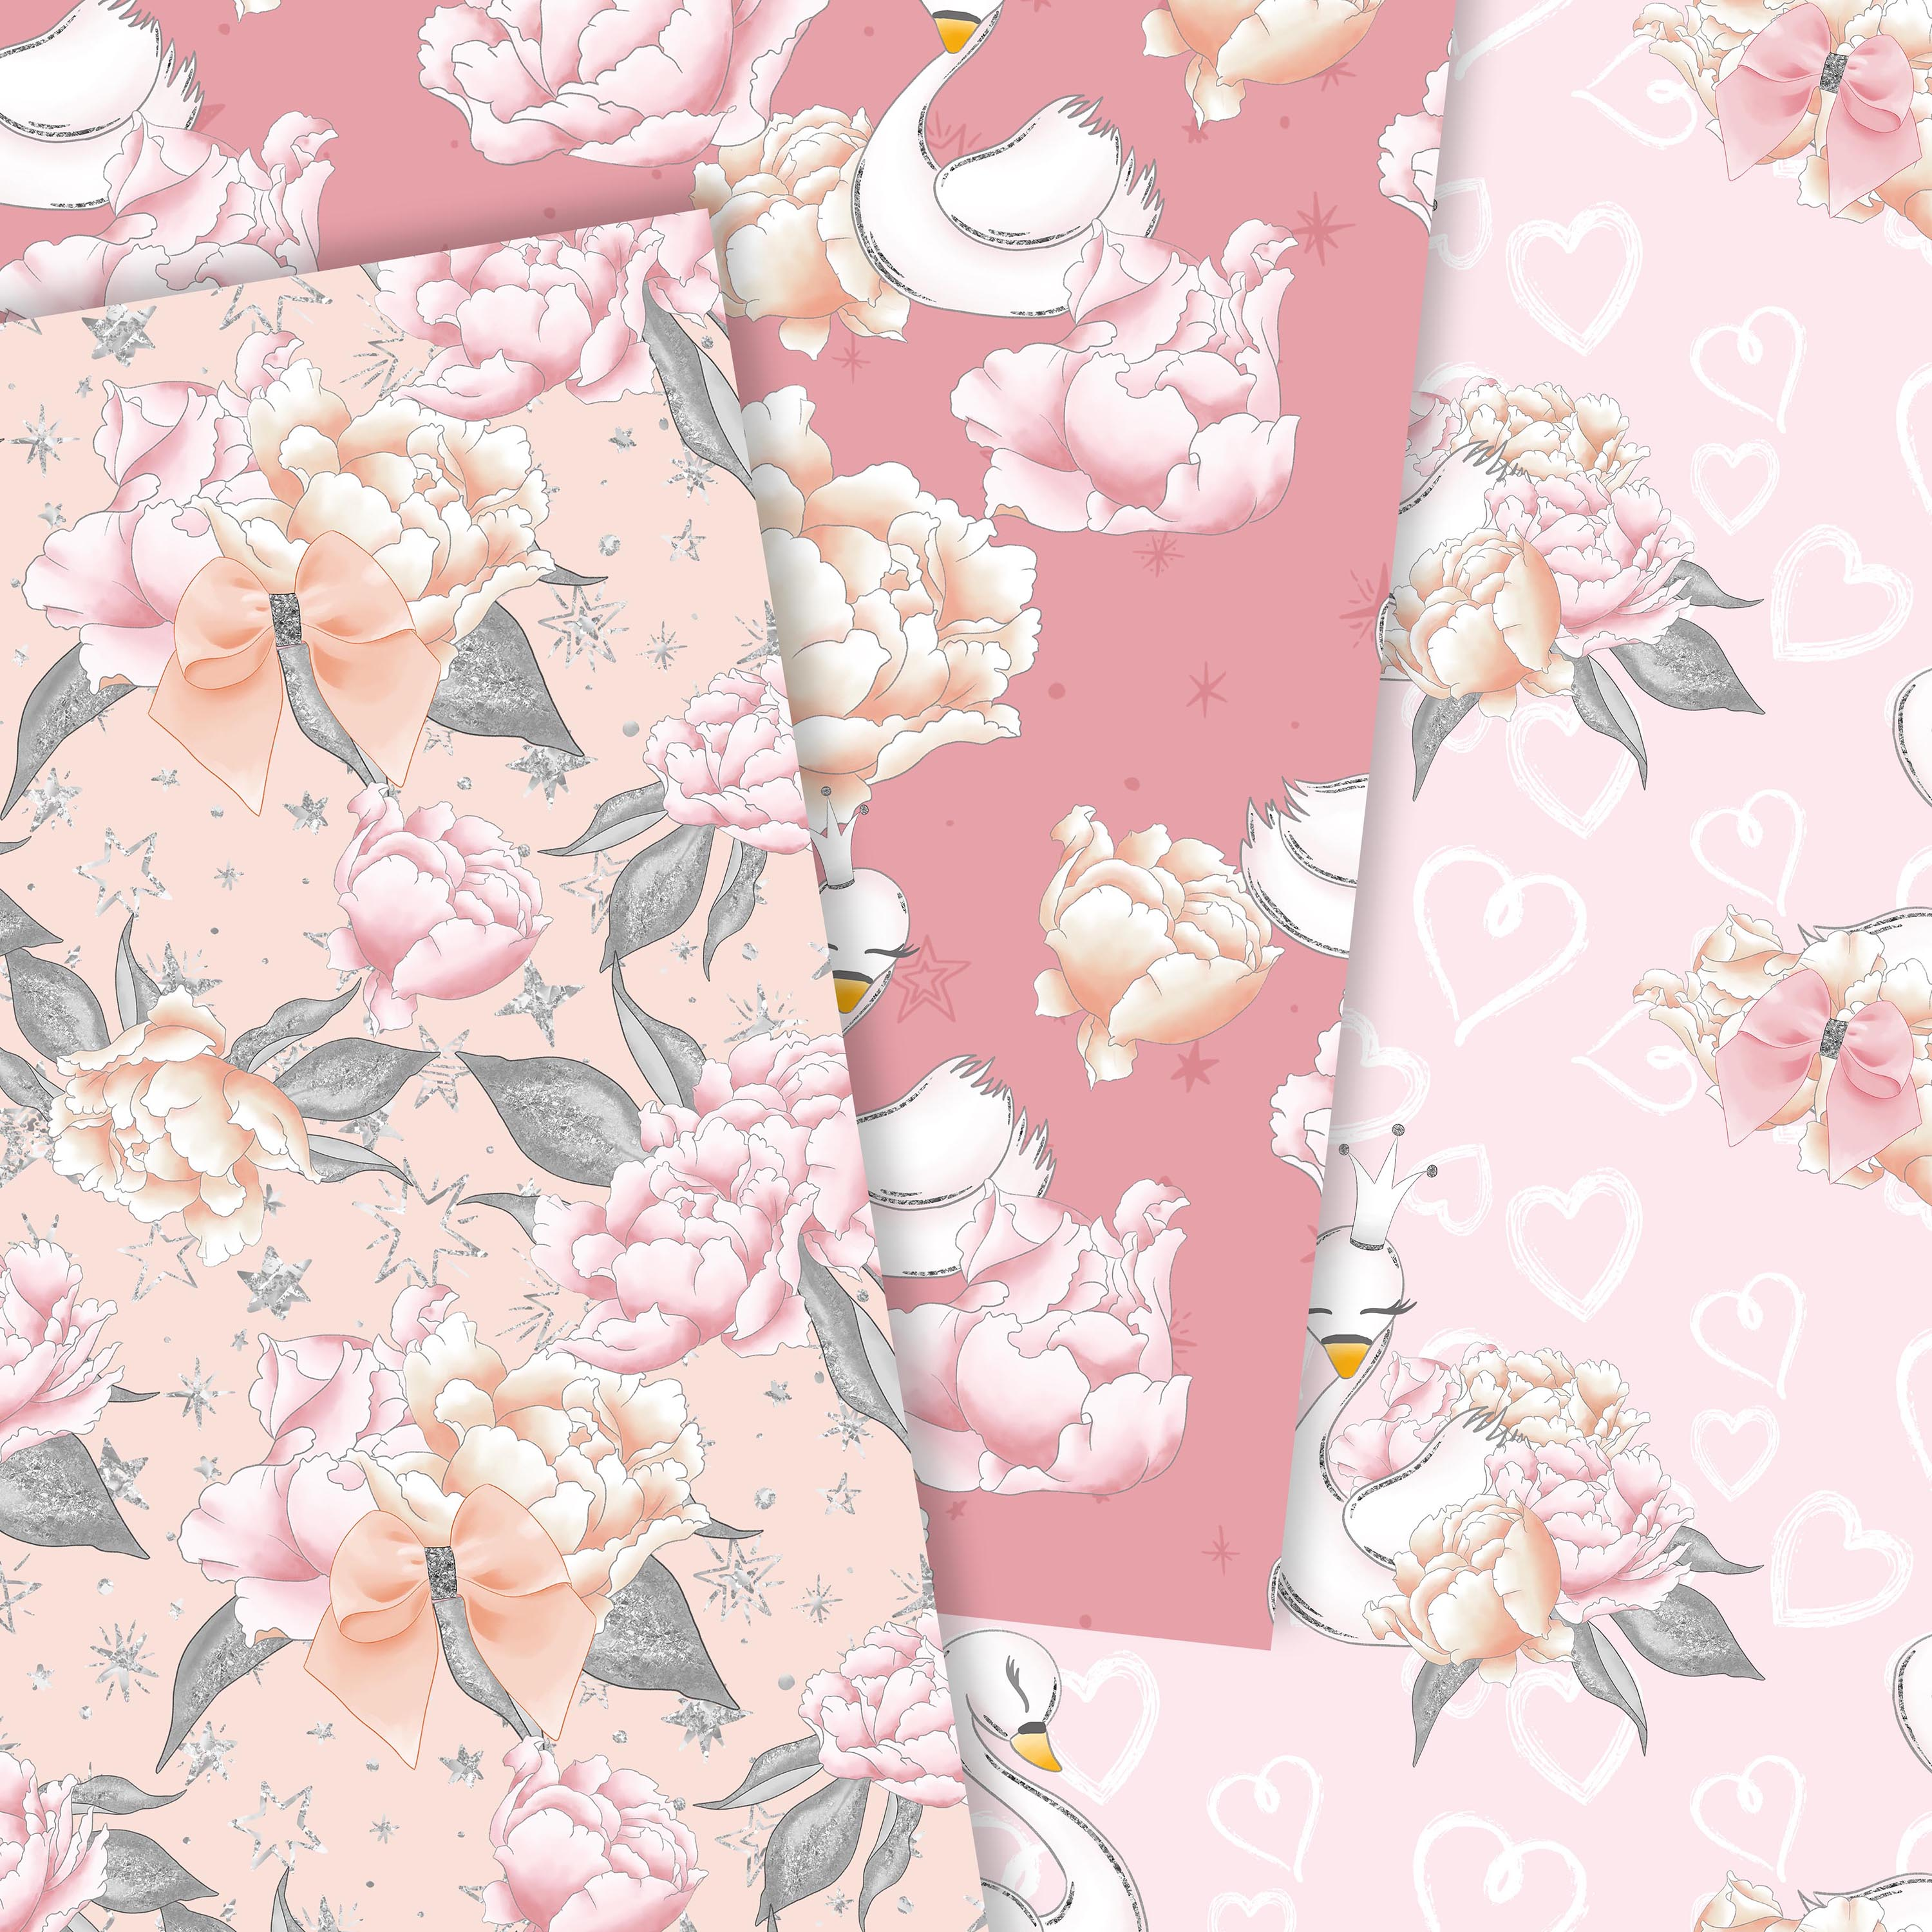 Wild swans patterns example image 2